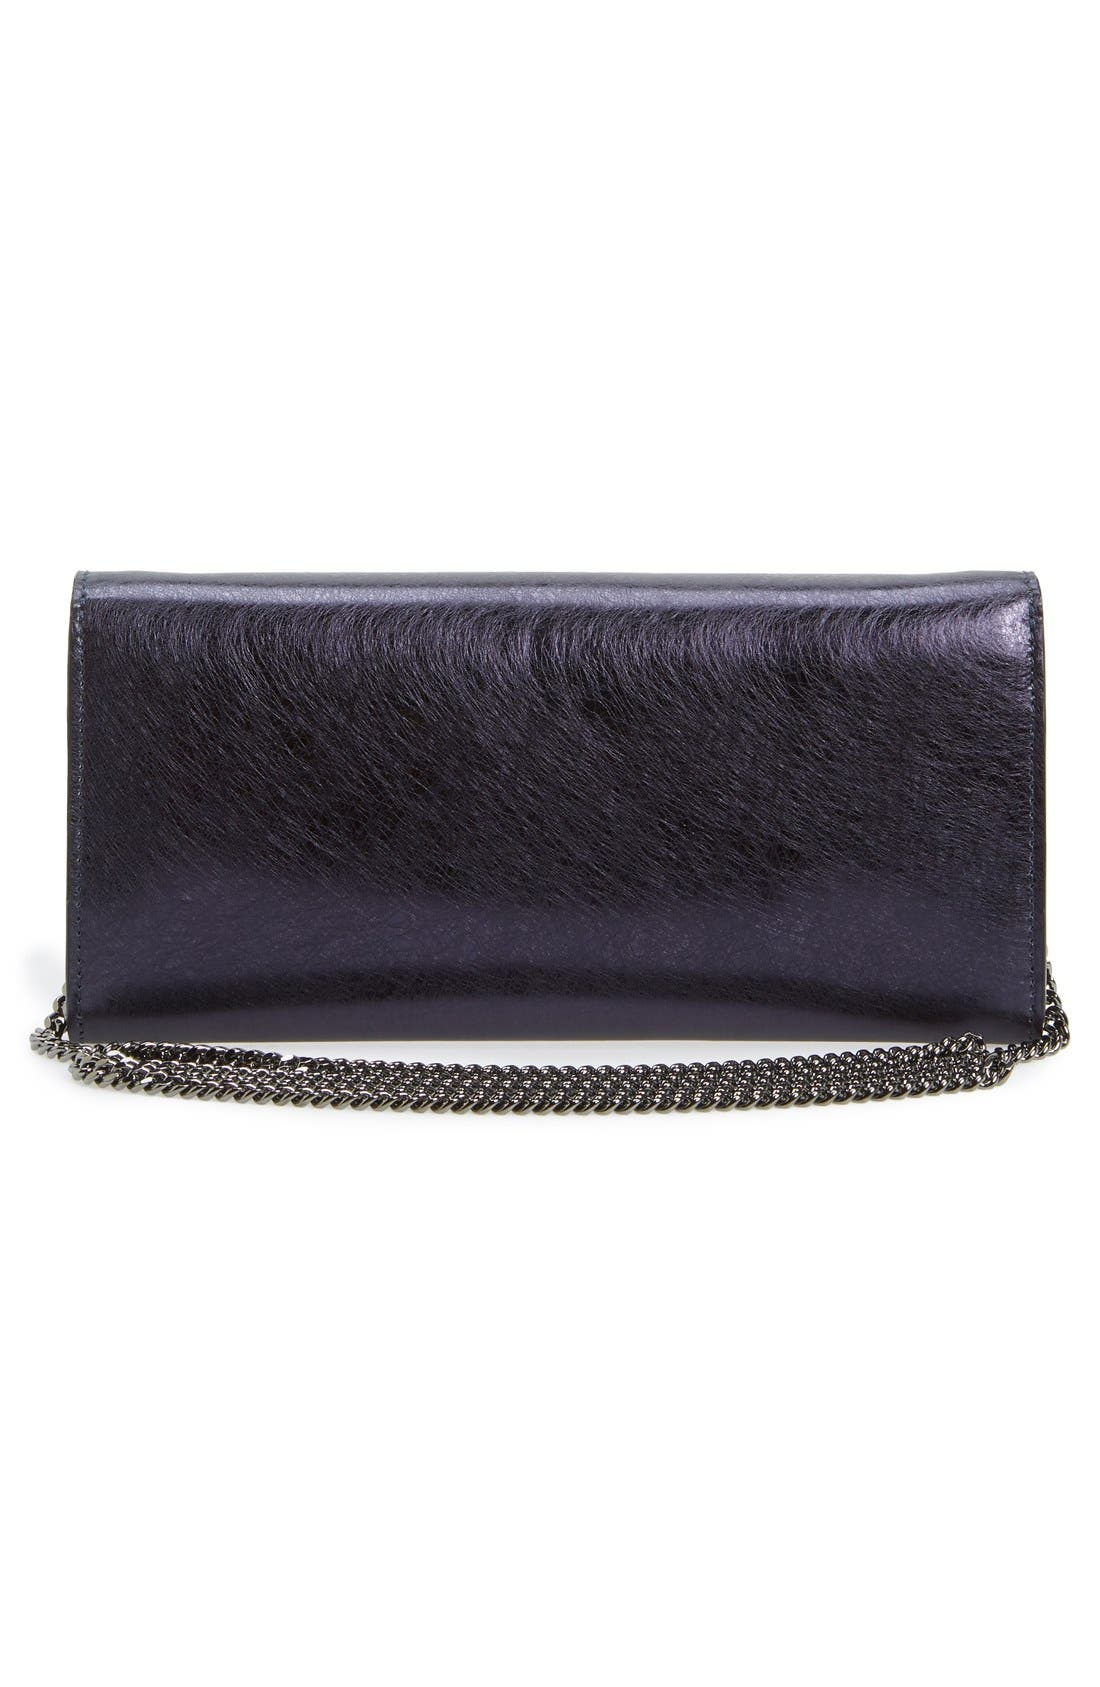 Alternate Image 3  - Jimmy Choo 'Milla' Etched Metallic Spazzolato Leather Flap Clutch